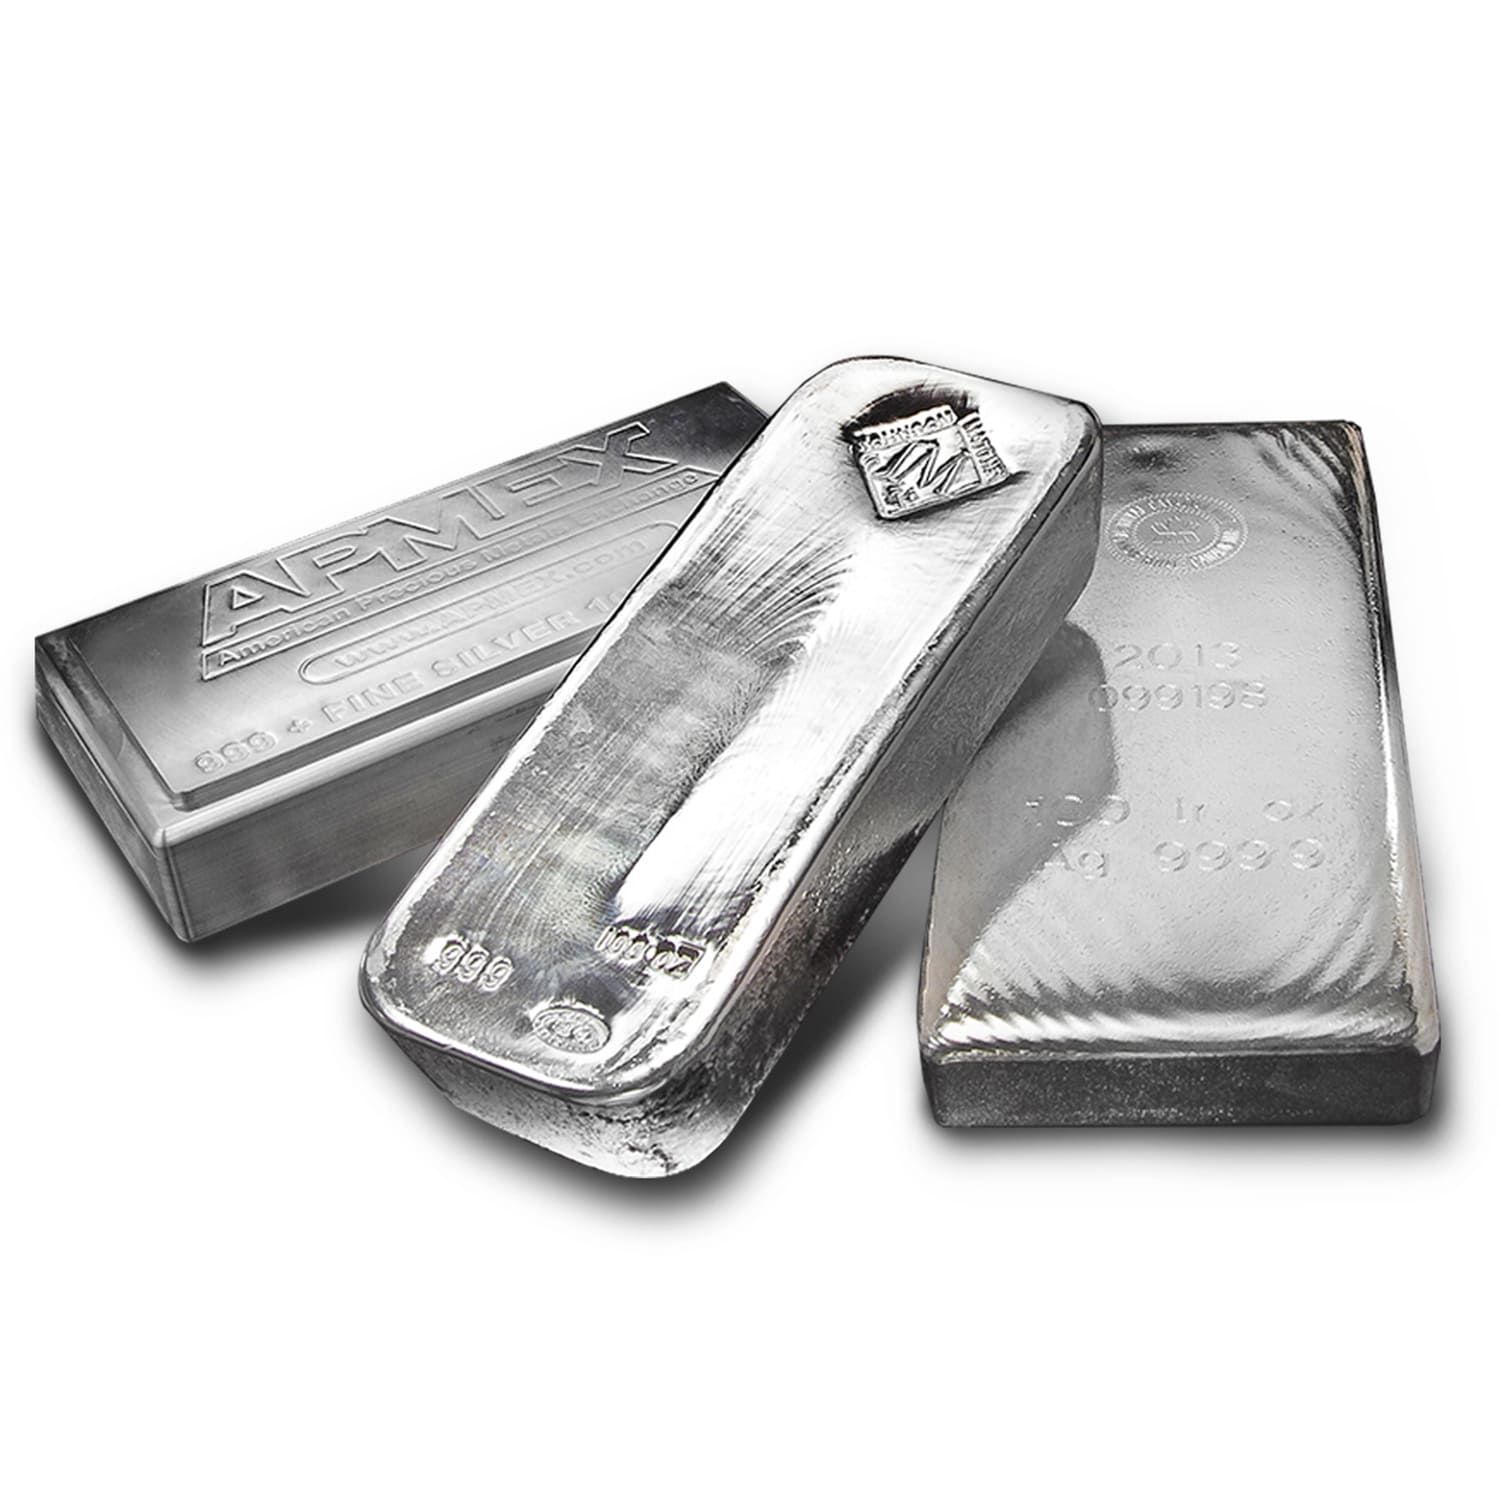 103.55 oz Silver Bars - Secondary Market